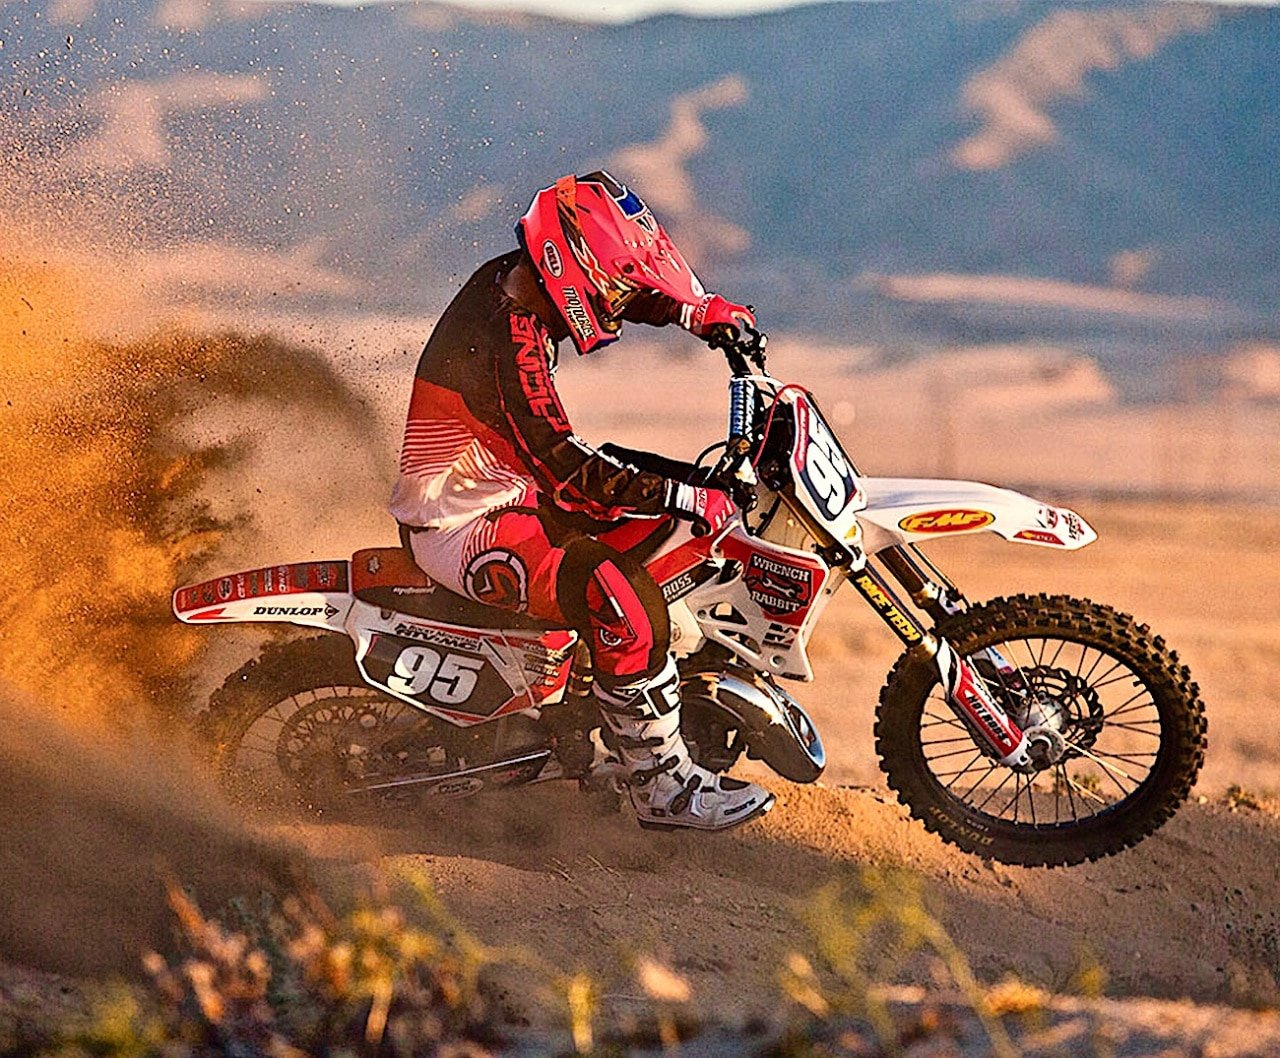 TWO-STROKE TEST: MAKING A 1995 HONDA CR125 BETTER THAN NEW